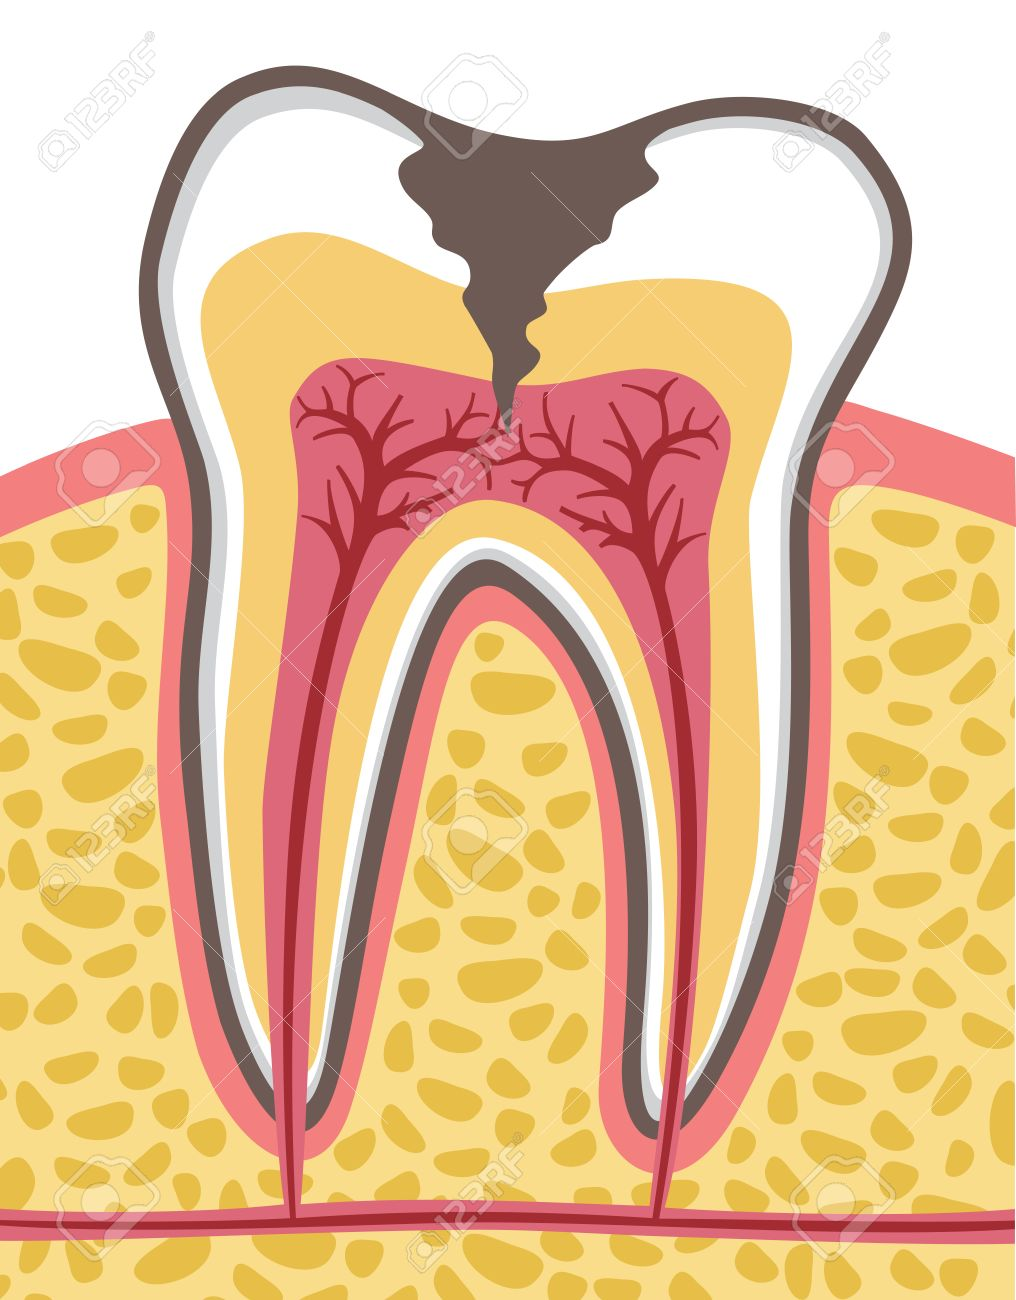 Tooth Cross Section (anatomy) With Dental Caries Royalty Free ...